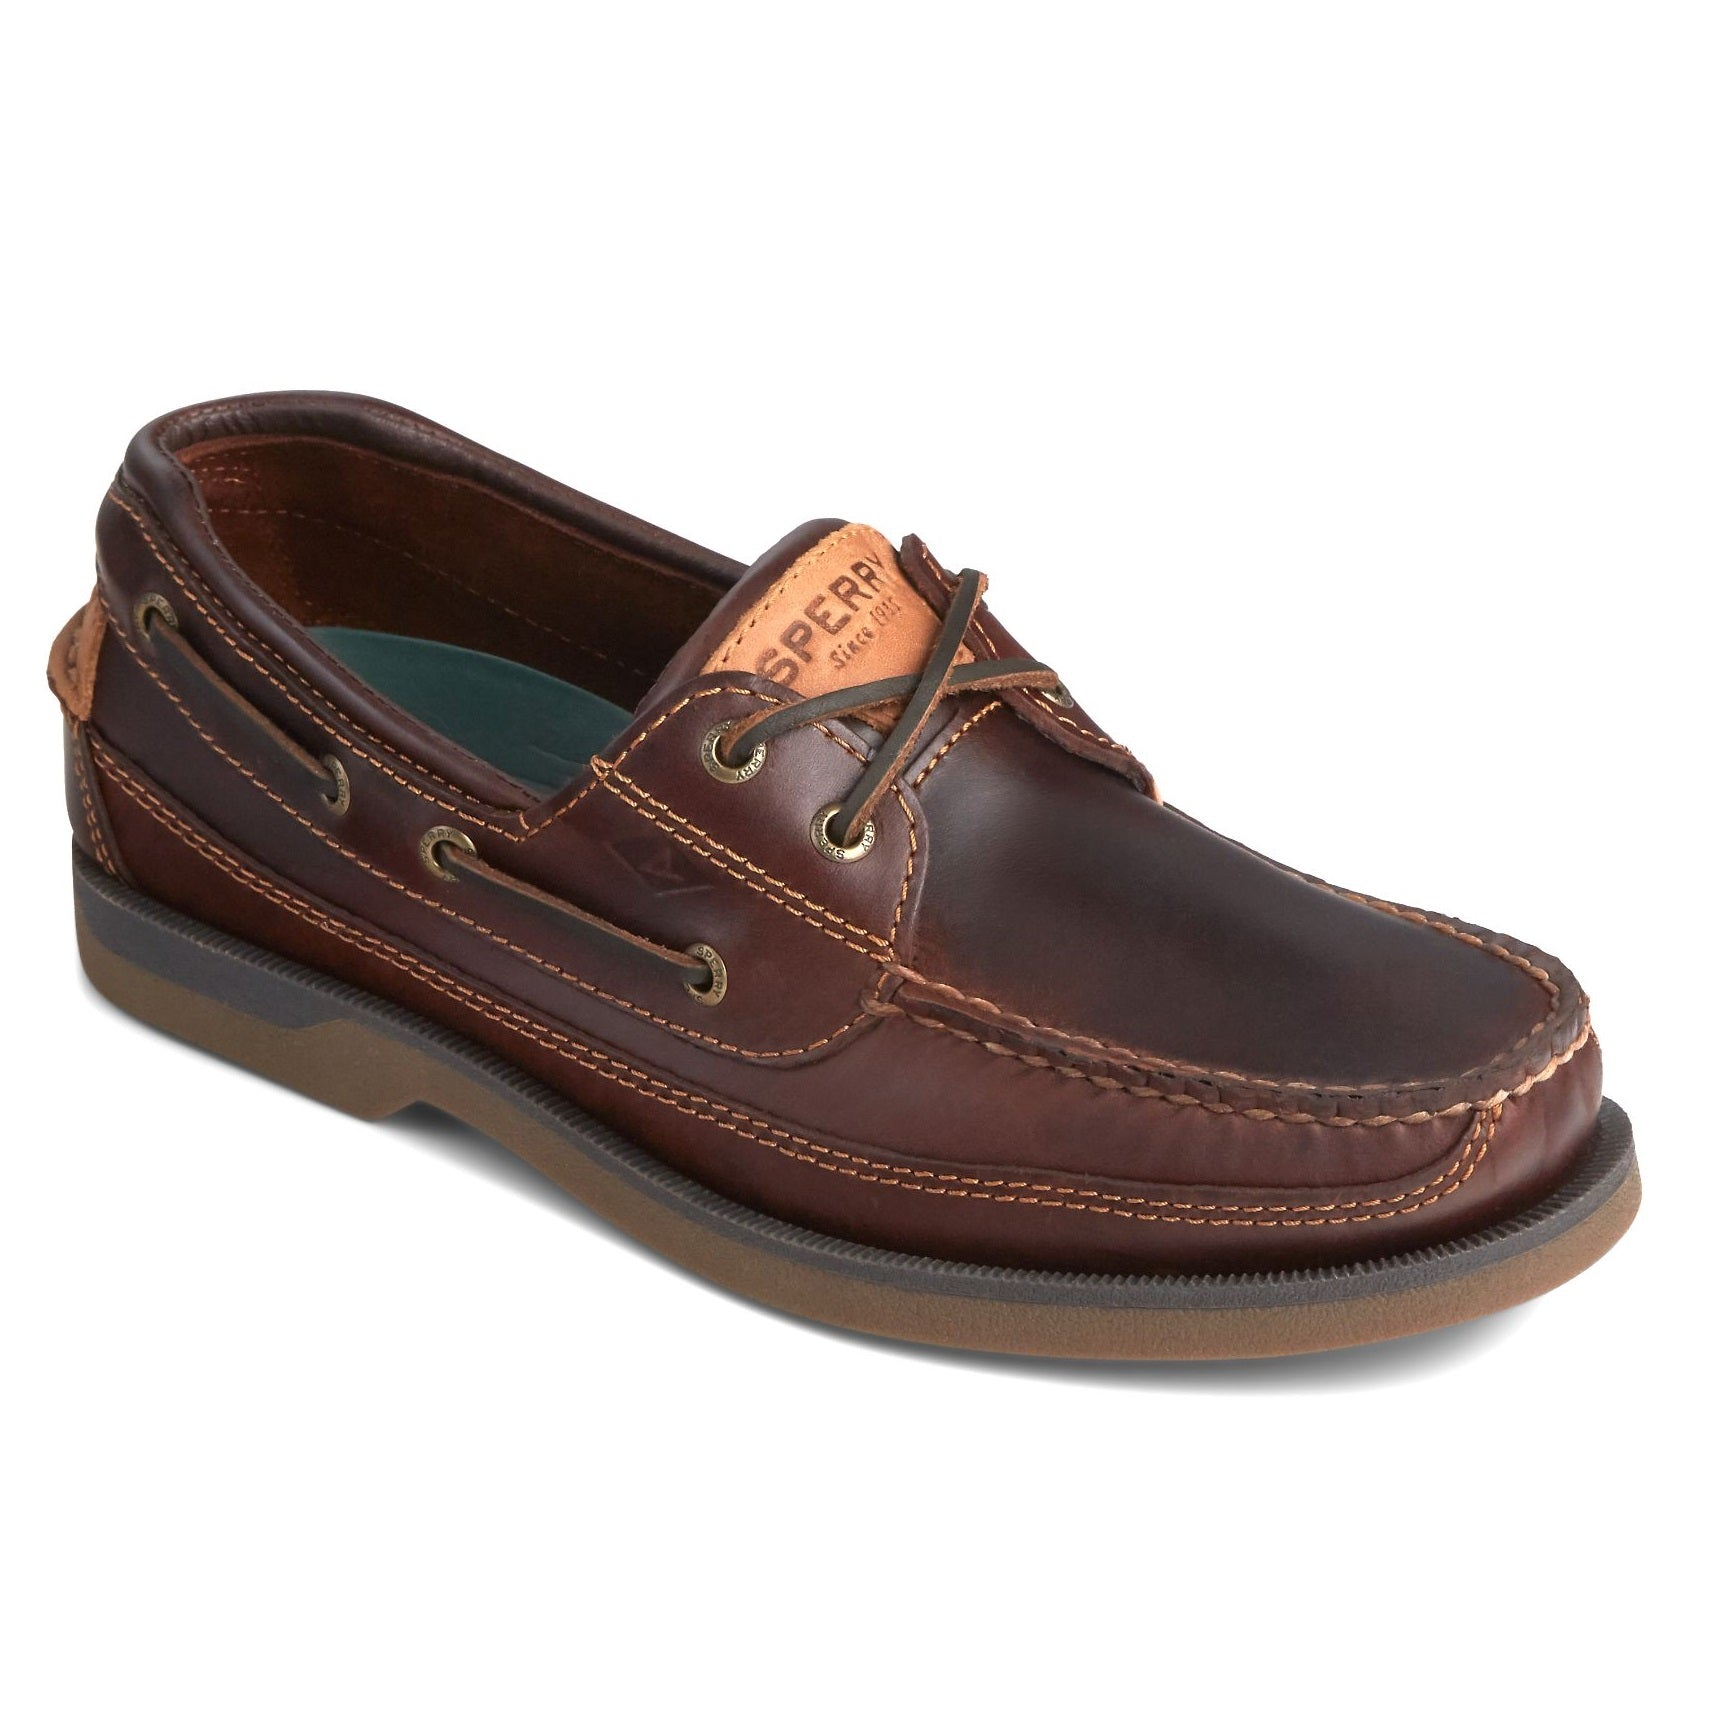 Men's Sperry Mako 2-Eye Canoe Moc Boat Shoe